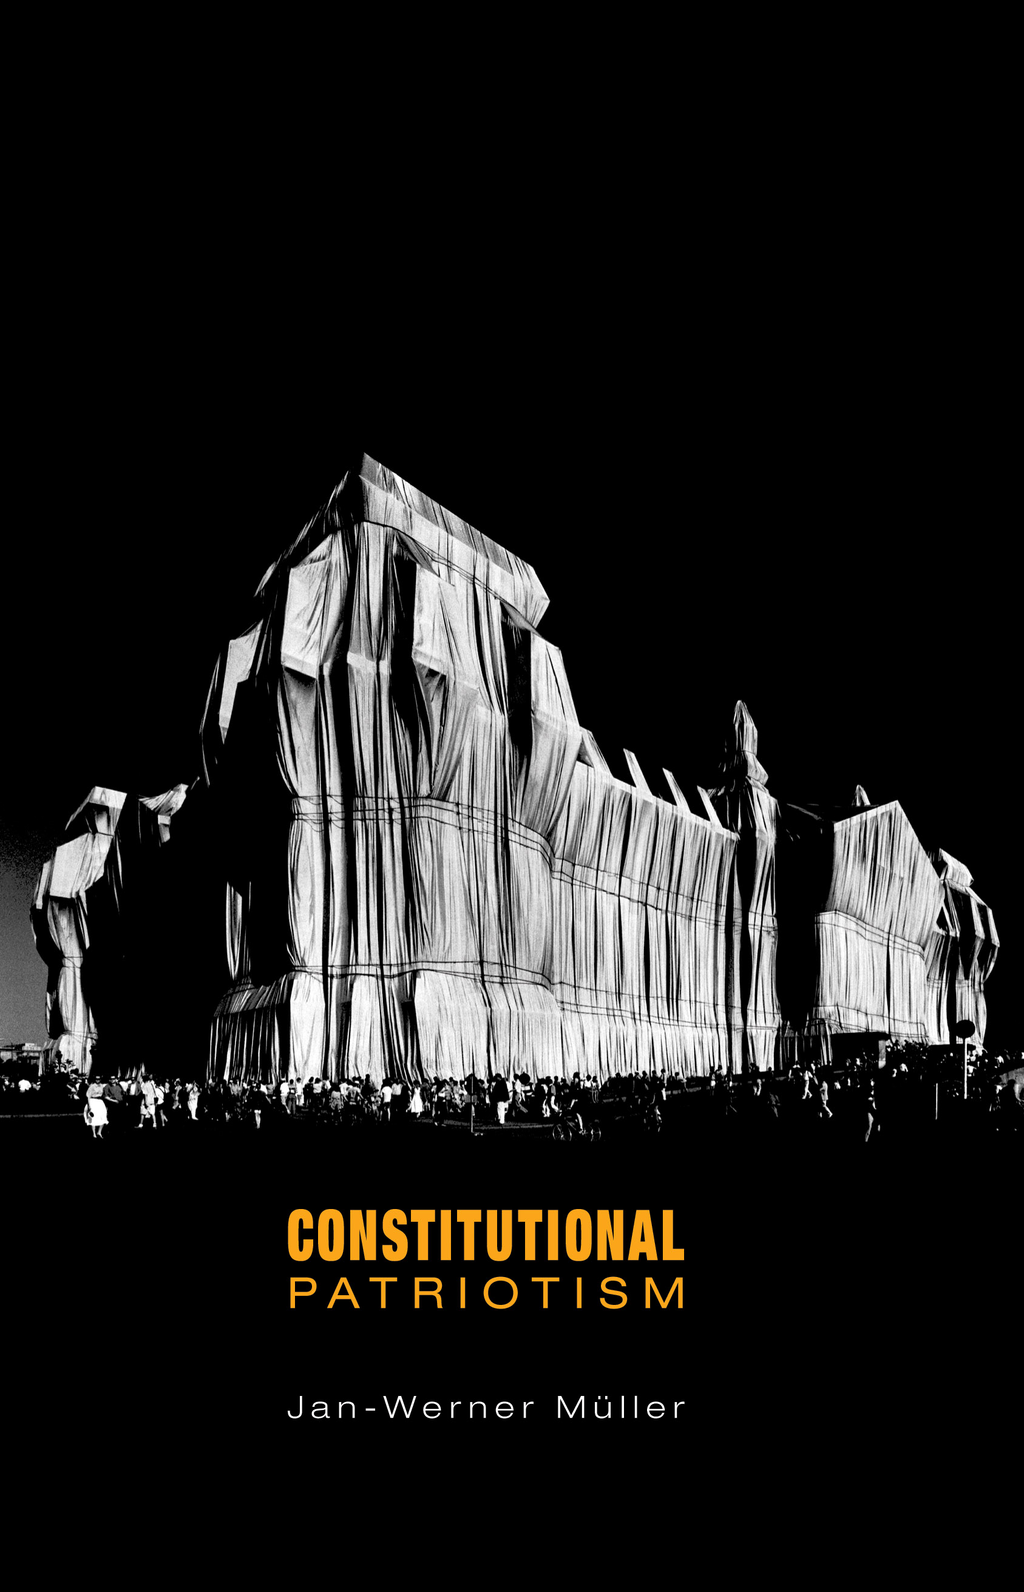 Constitutional Patriotism By: Jan-Werner Müller